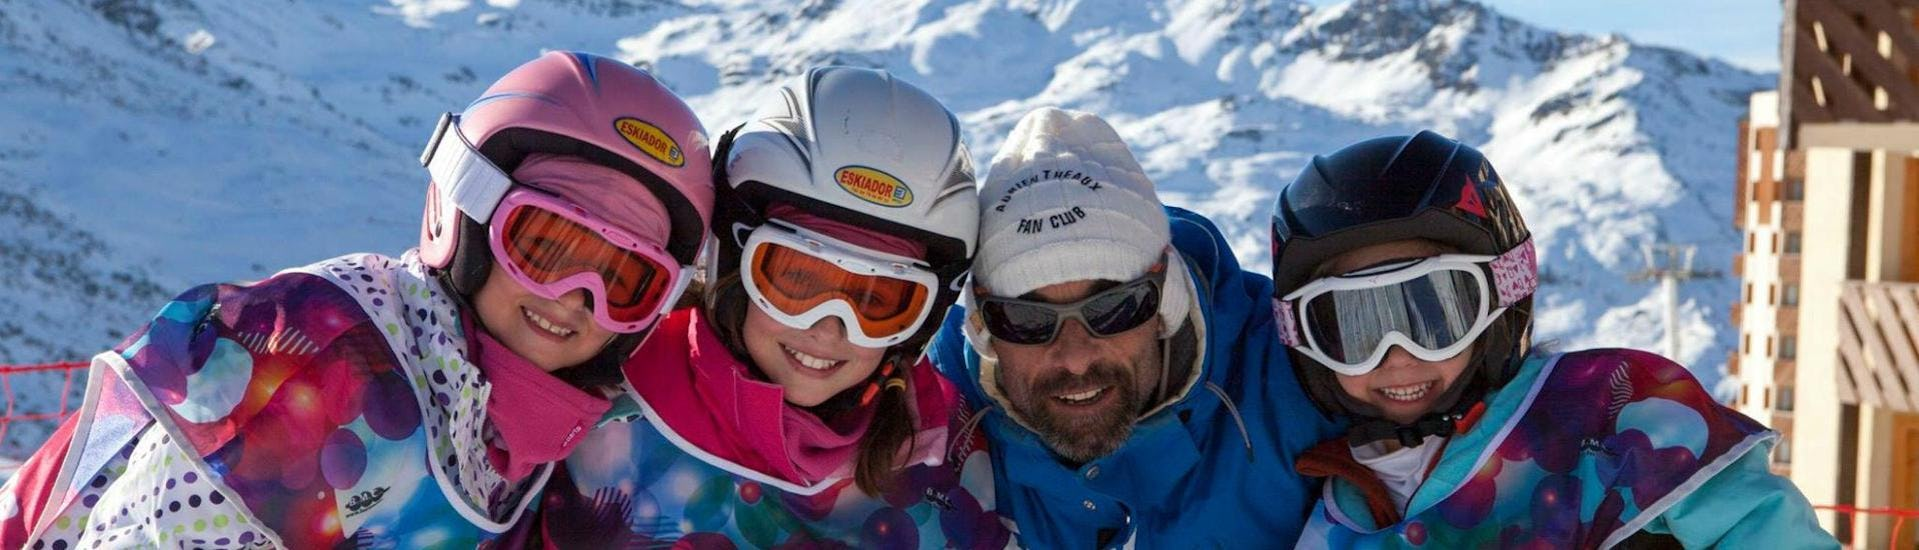 A group of children in full skiing gear are smiling at the camera together with their ski instructor from the ski school Prosneige Val Thorens & Les Menuires while preparing for their Private Ski Lessons for Kids - All Ages - Low Season.